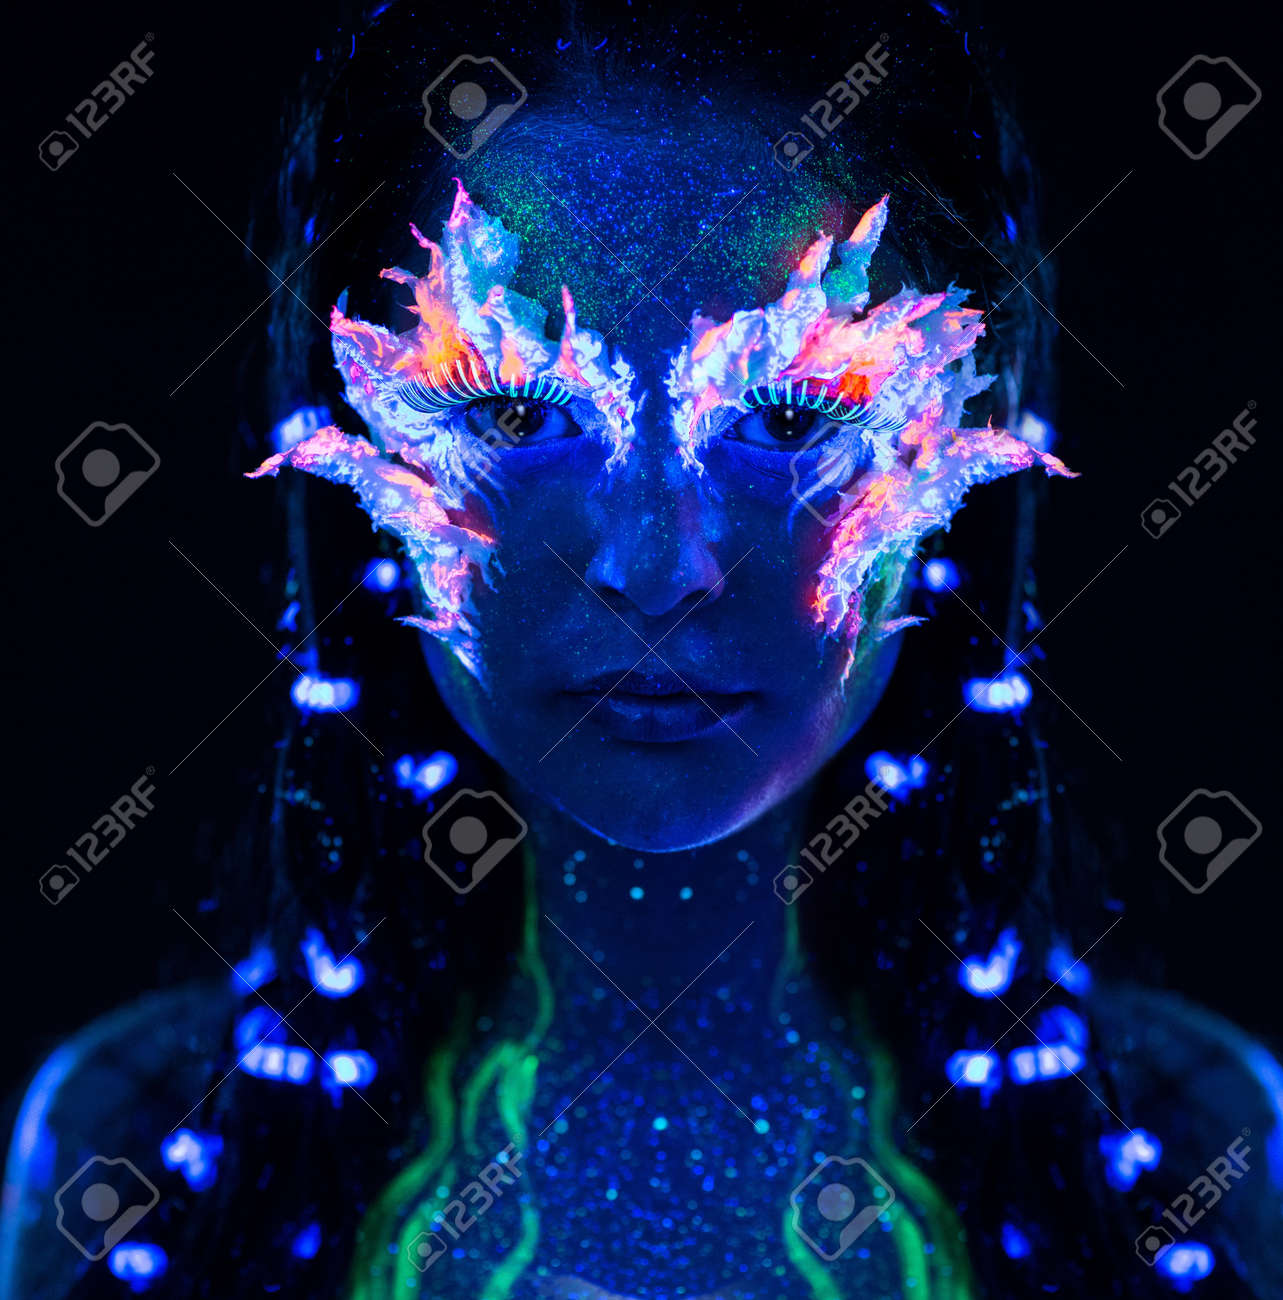 Portrait of beautiful woman with body art glowing in ultraviolet light Stock Photo - 18191887